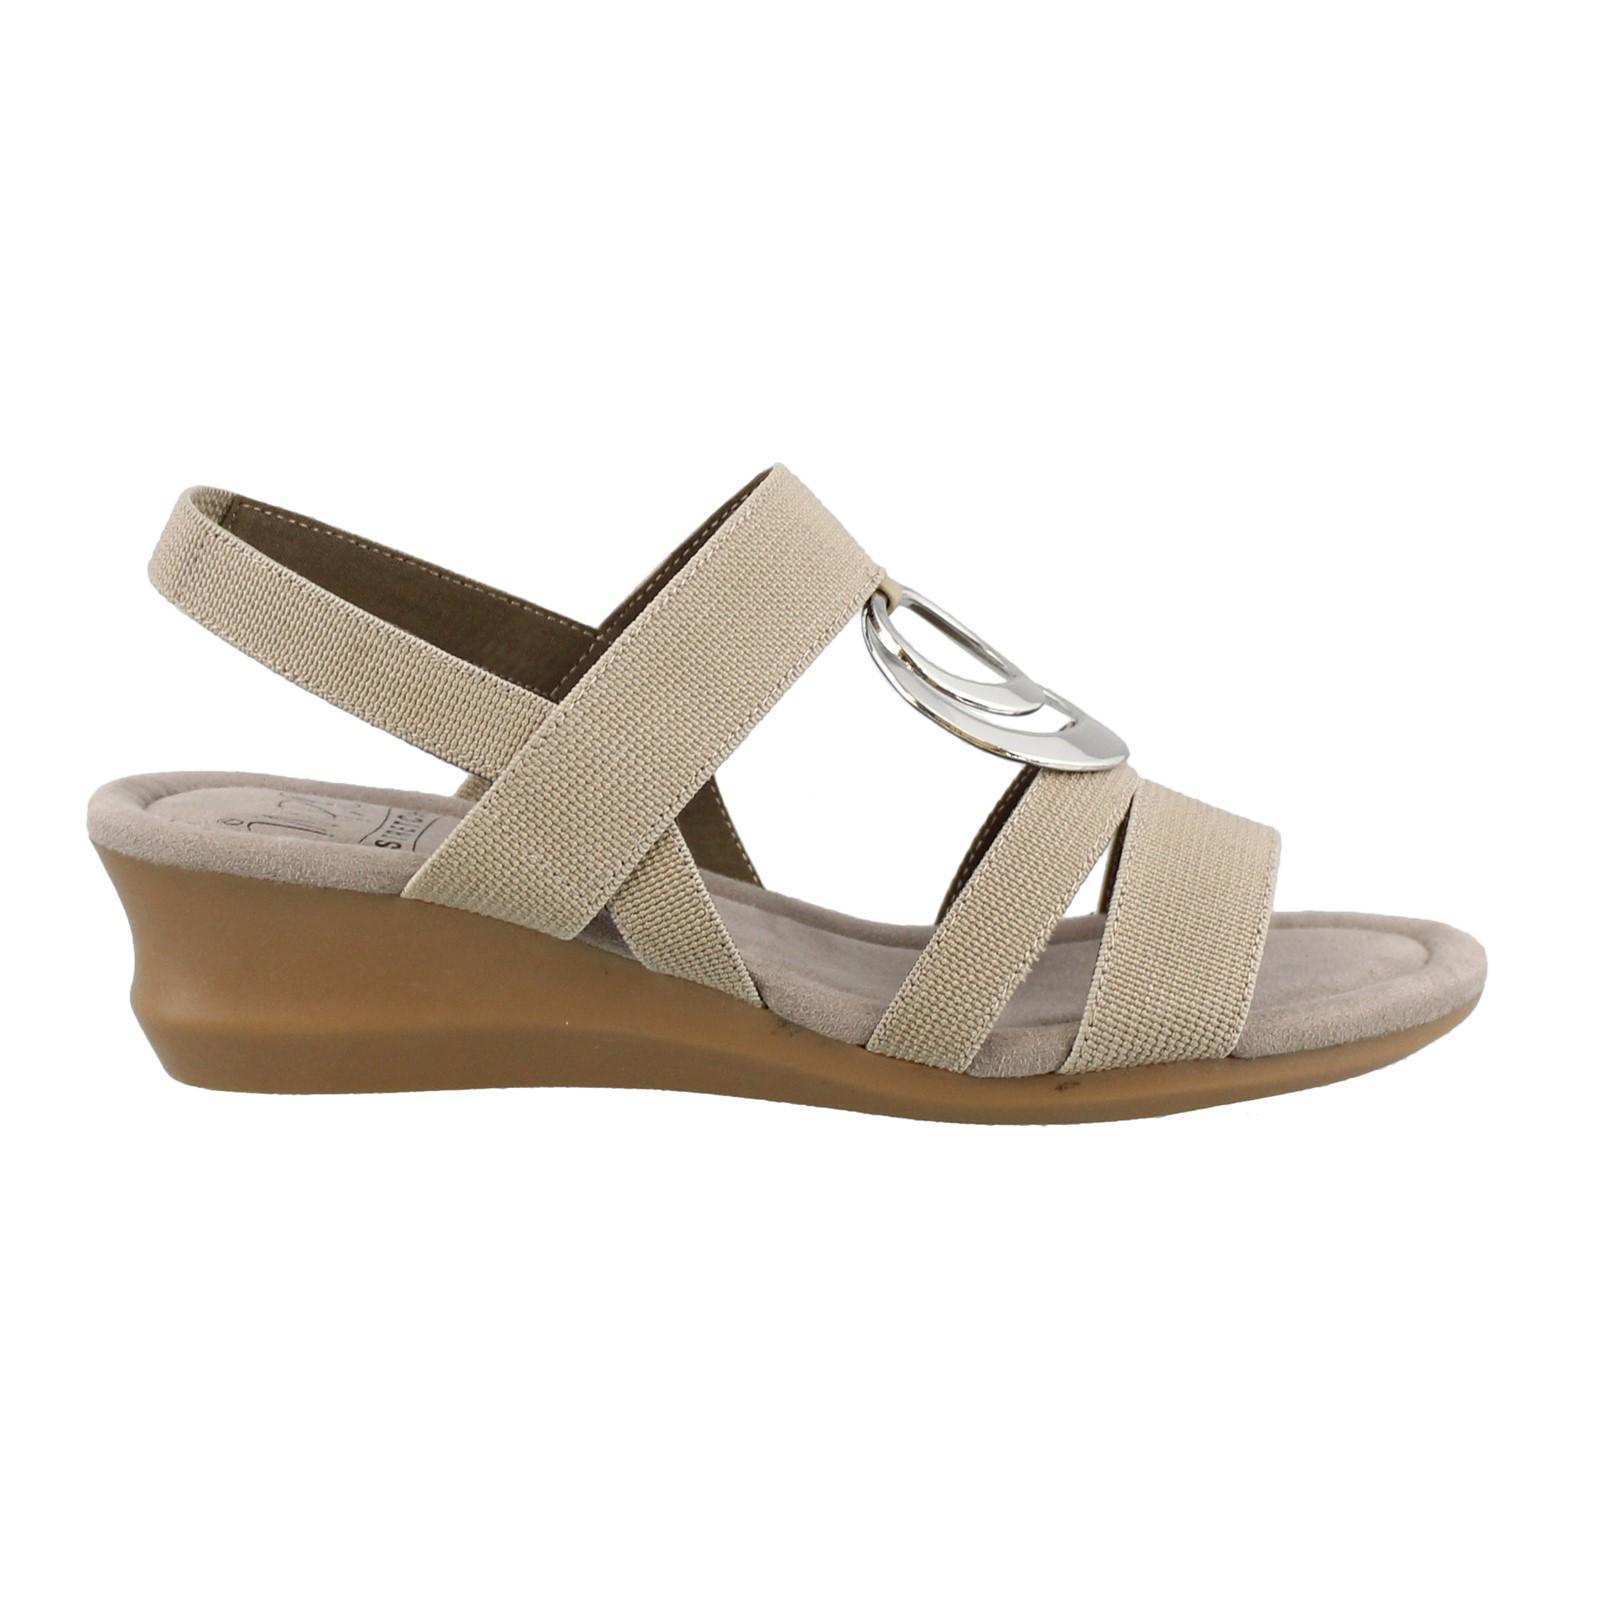 Women's Impo, Geanna Low Heel Sandals